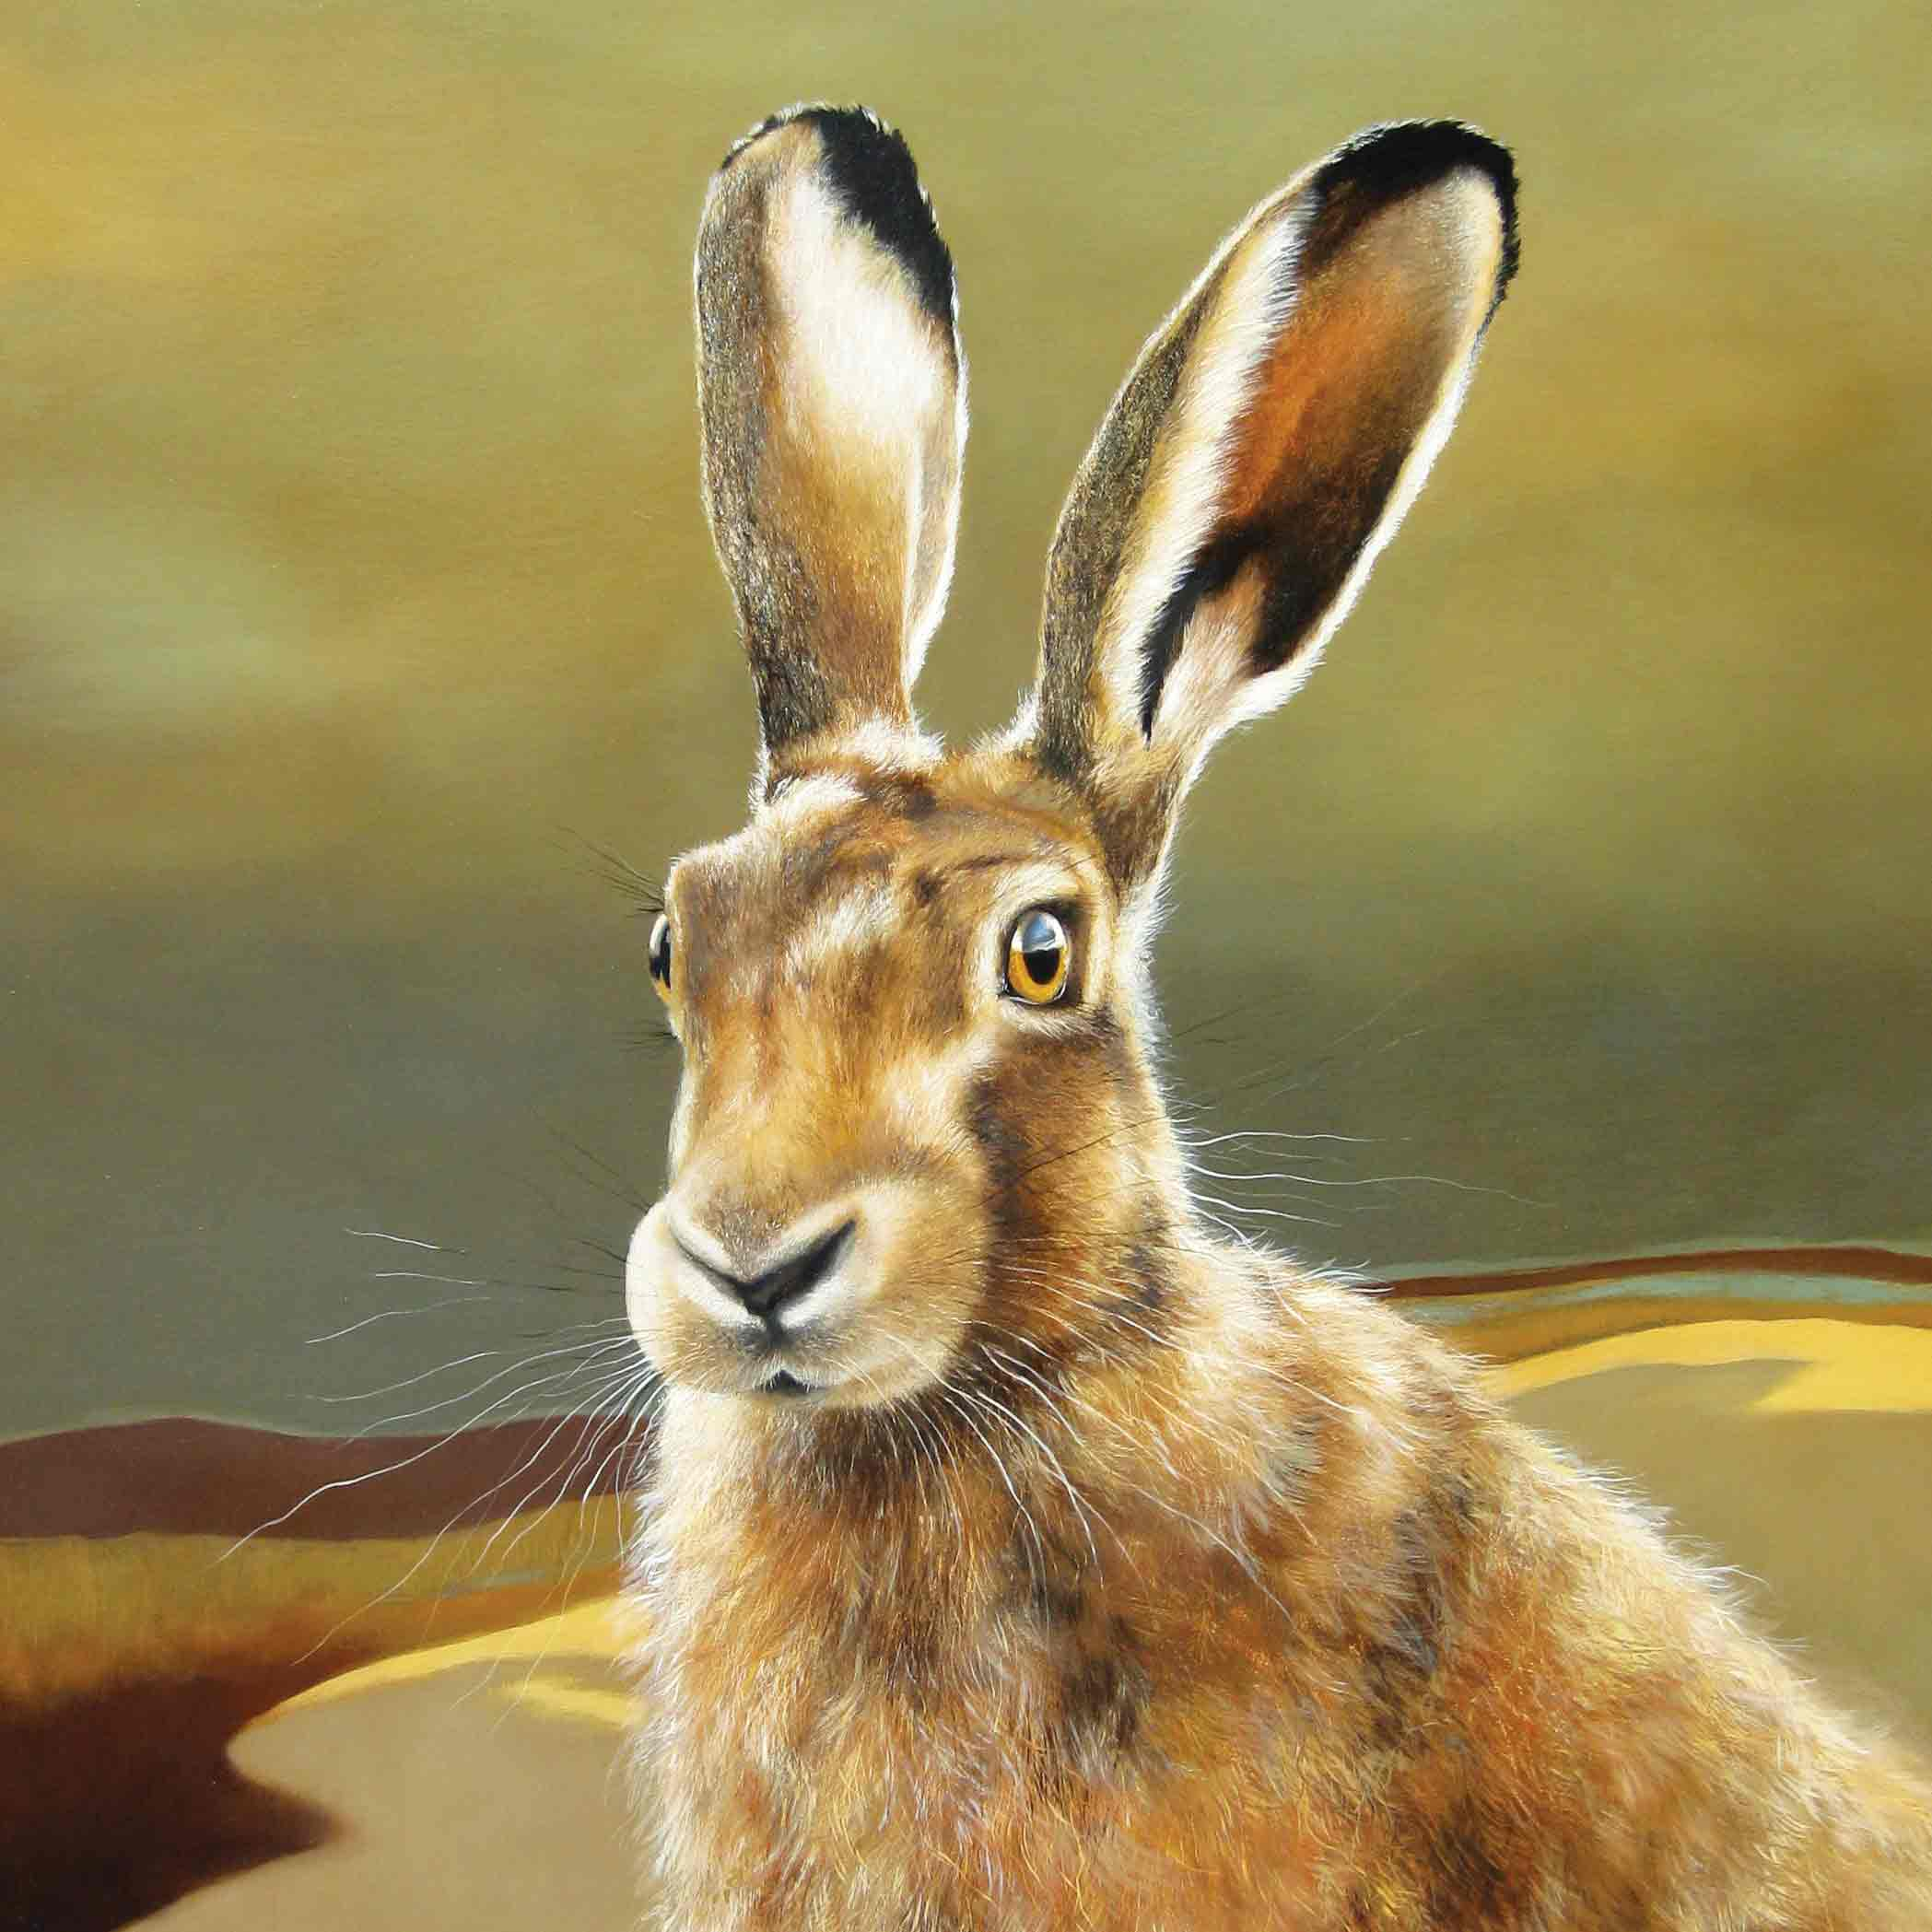 Art Greeting Card by Lesley McLaren, Hare on the Moor, Oil on Gesso panel, Hare